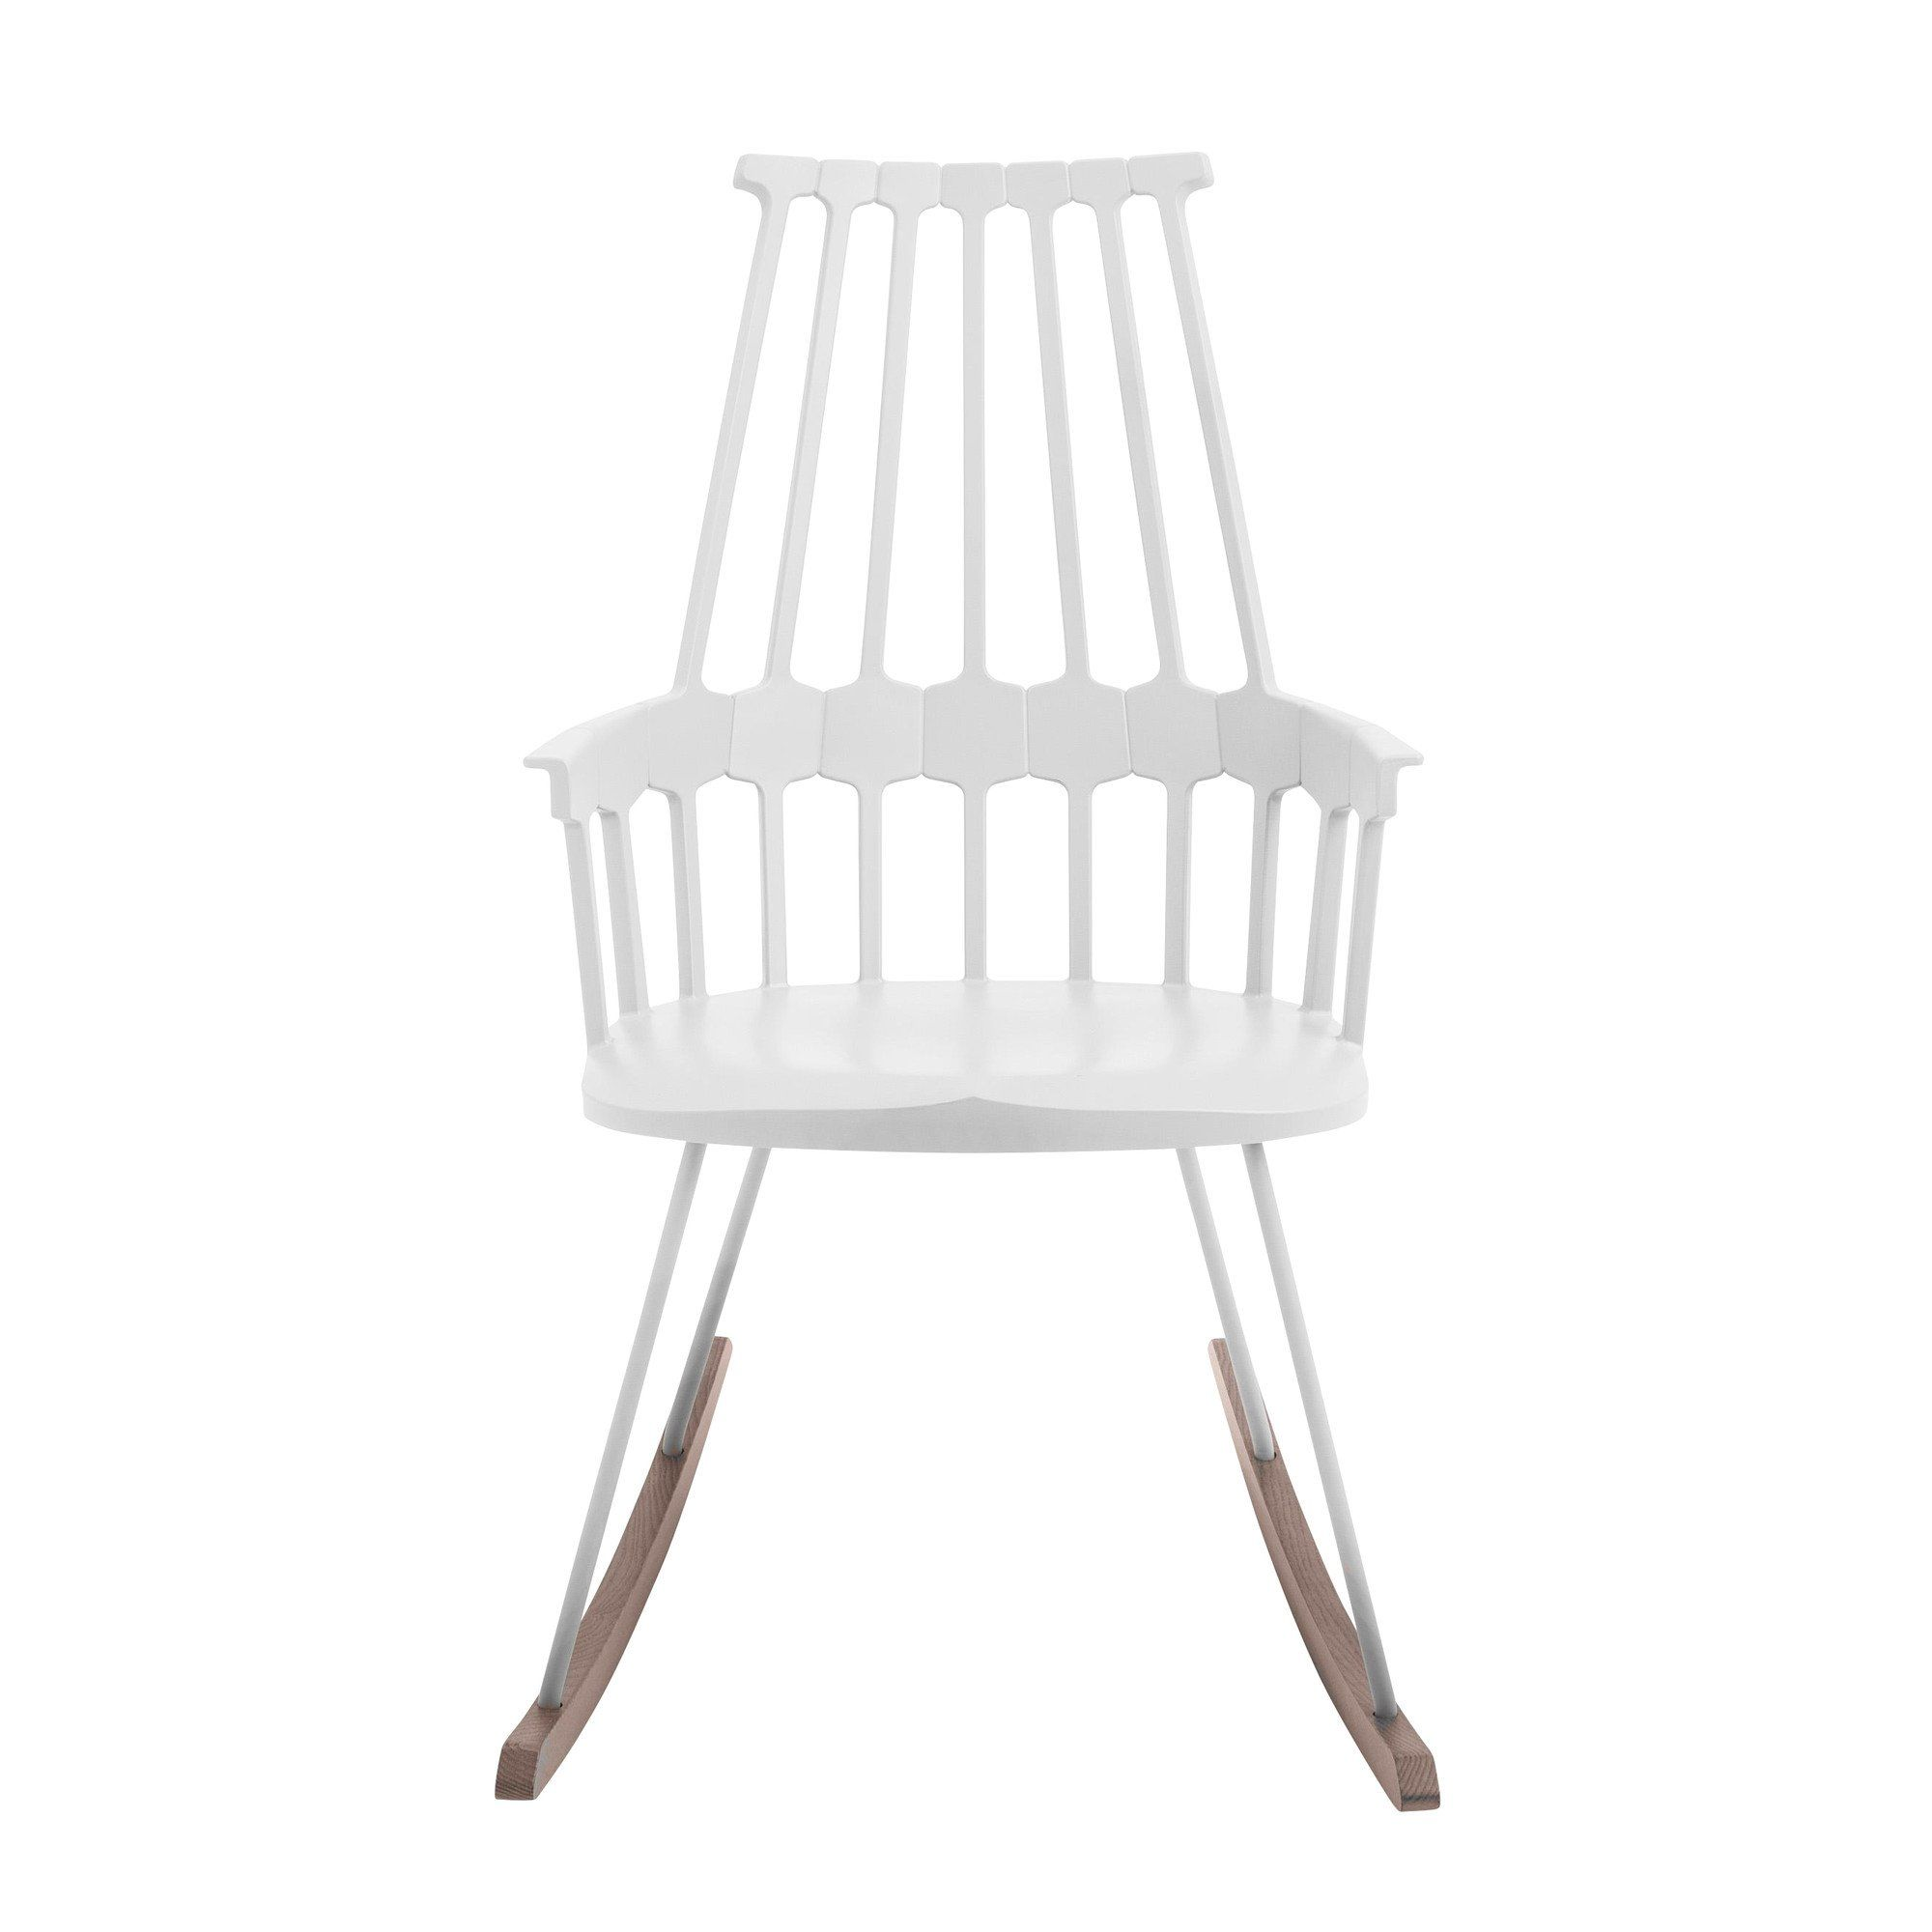 Kartell   Comback Rocking Chair   White/sled Ash Tree Stained ...